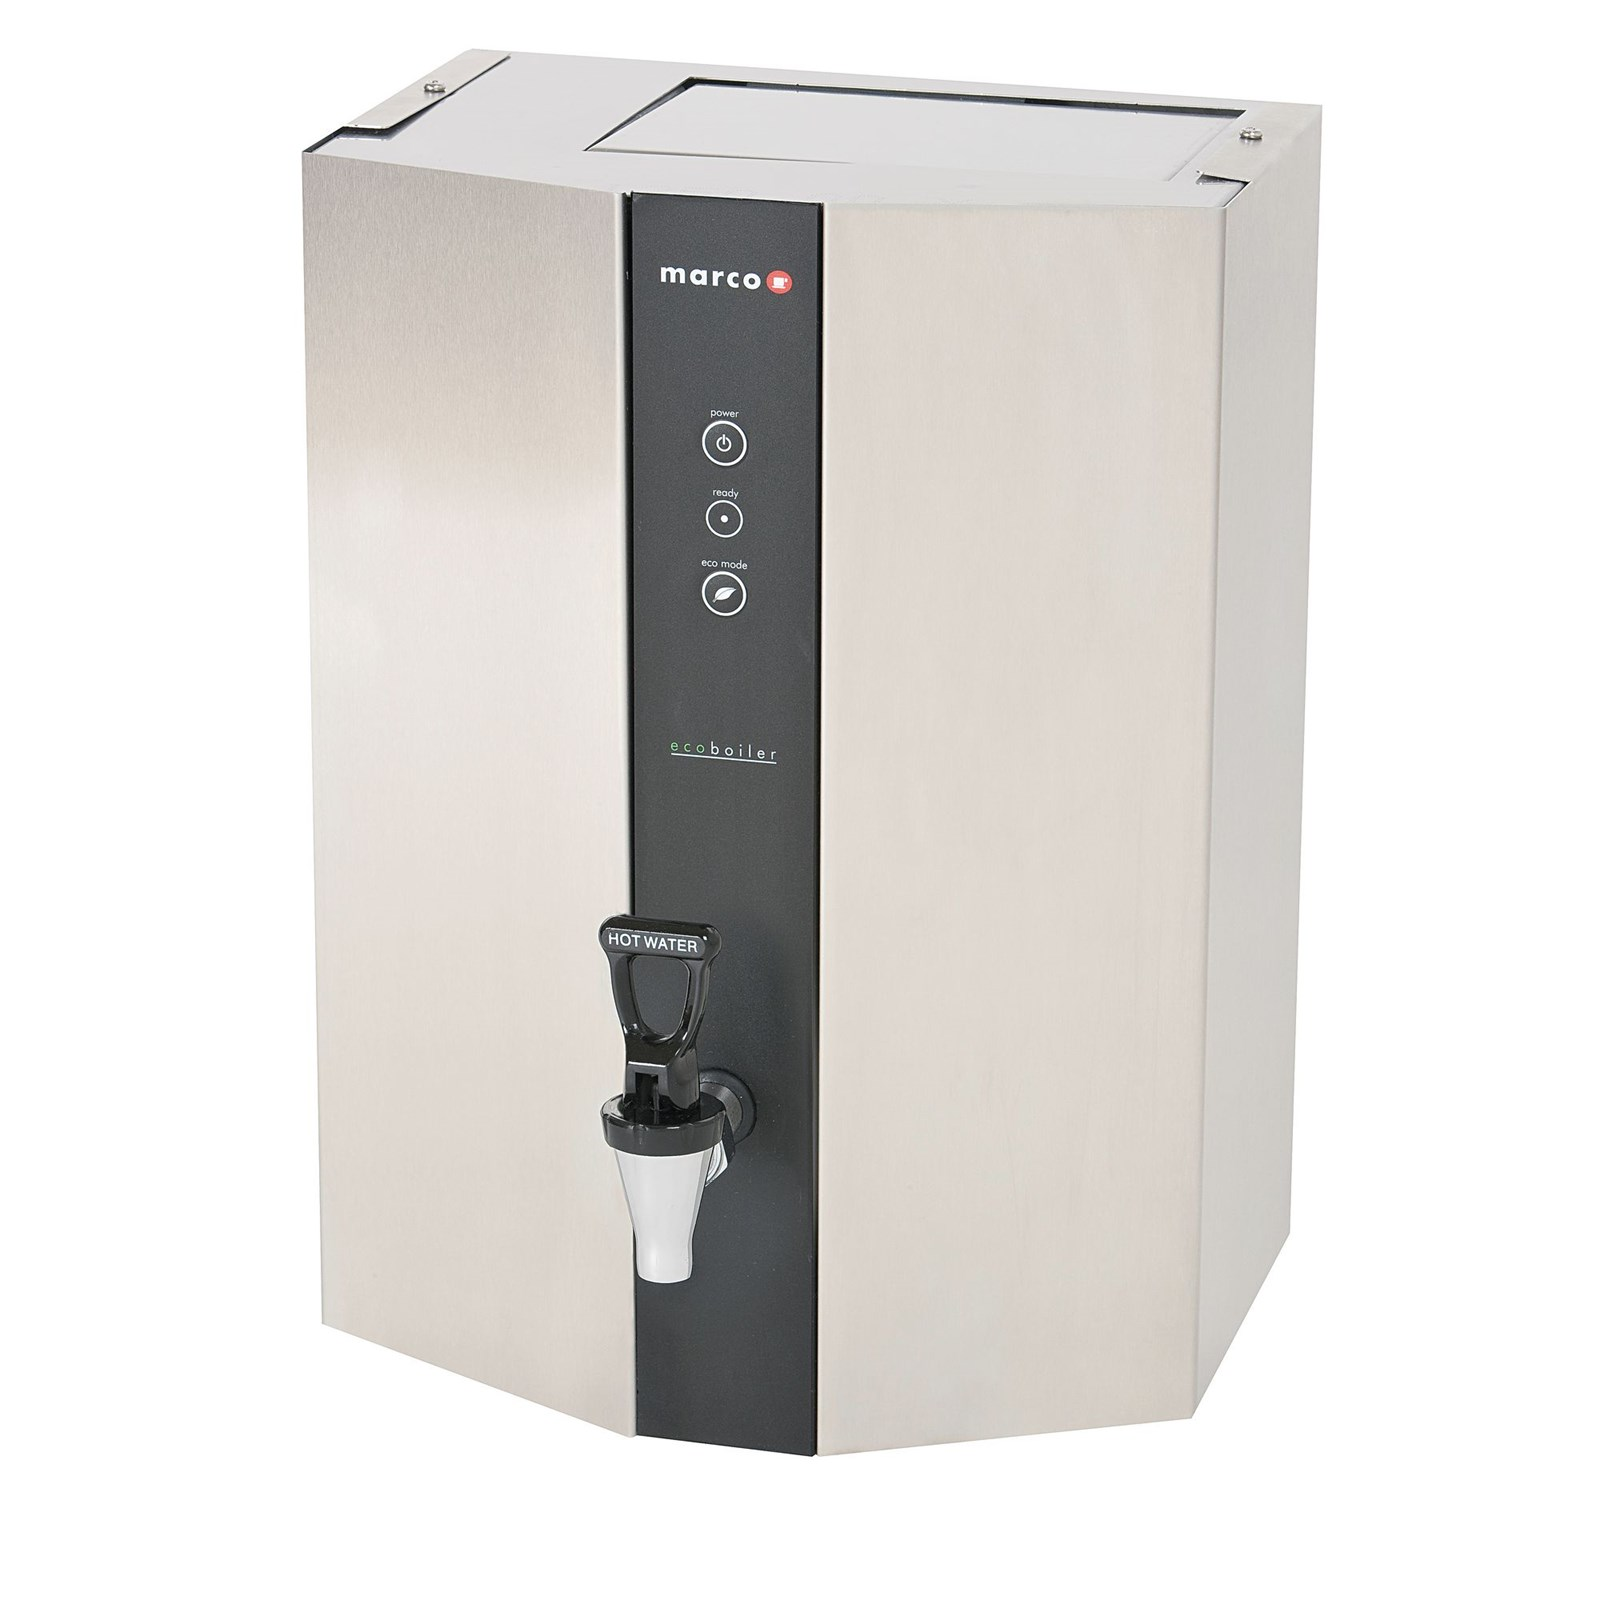 Marco Eco Water Boiler - 5 litre output | GLS Educational Supplies